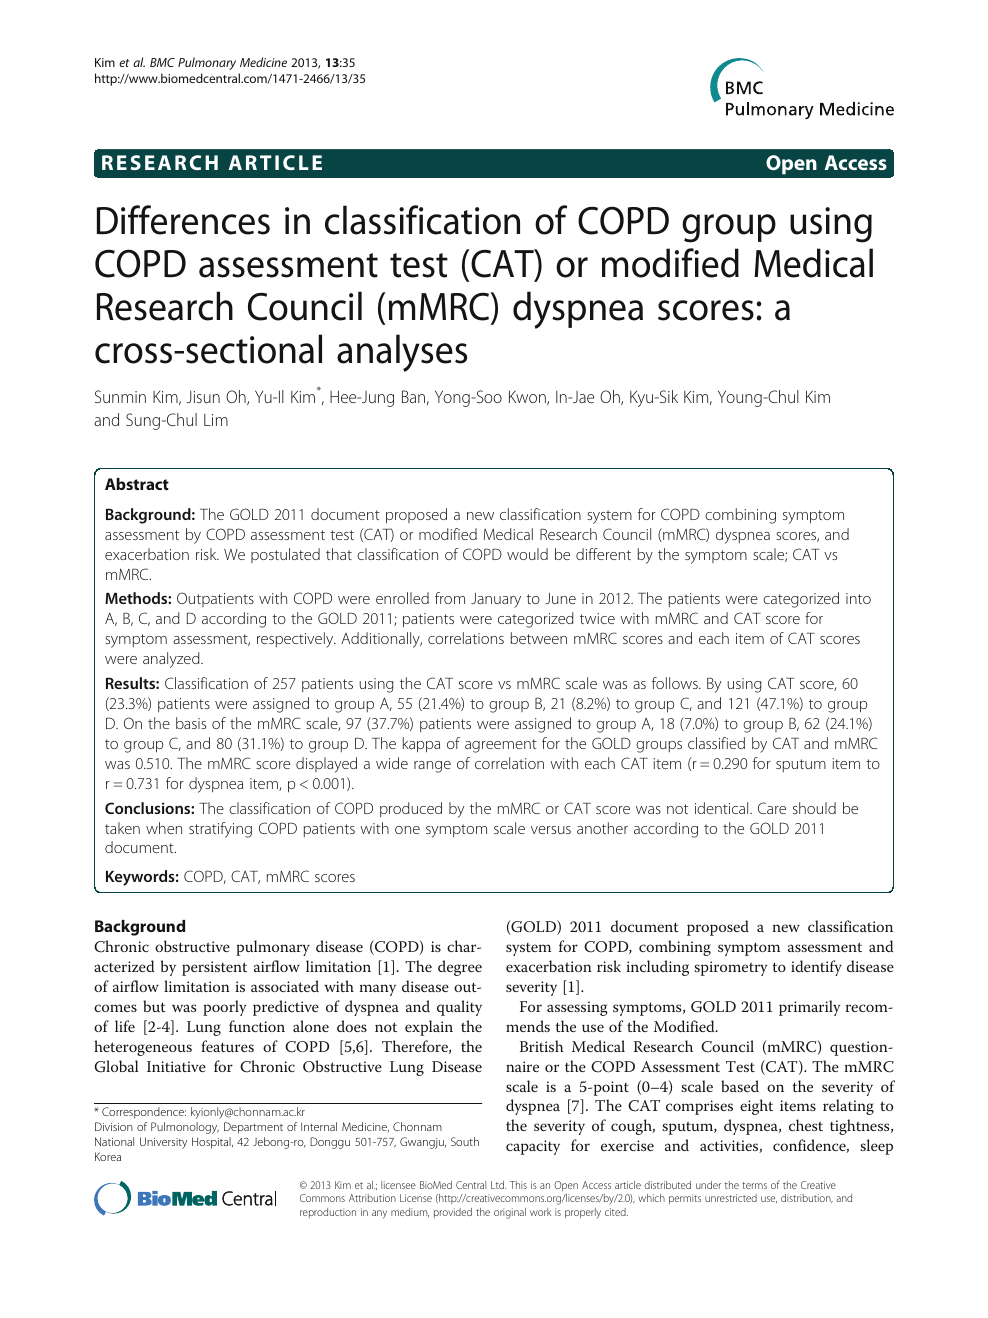 Differences in classification of COPD group using COPD